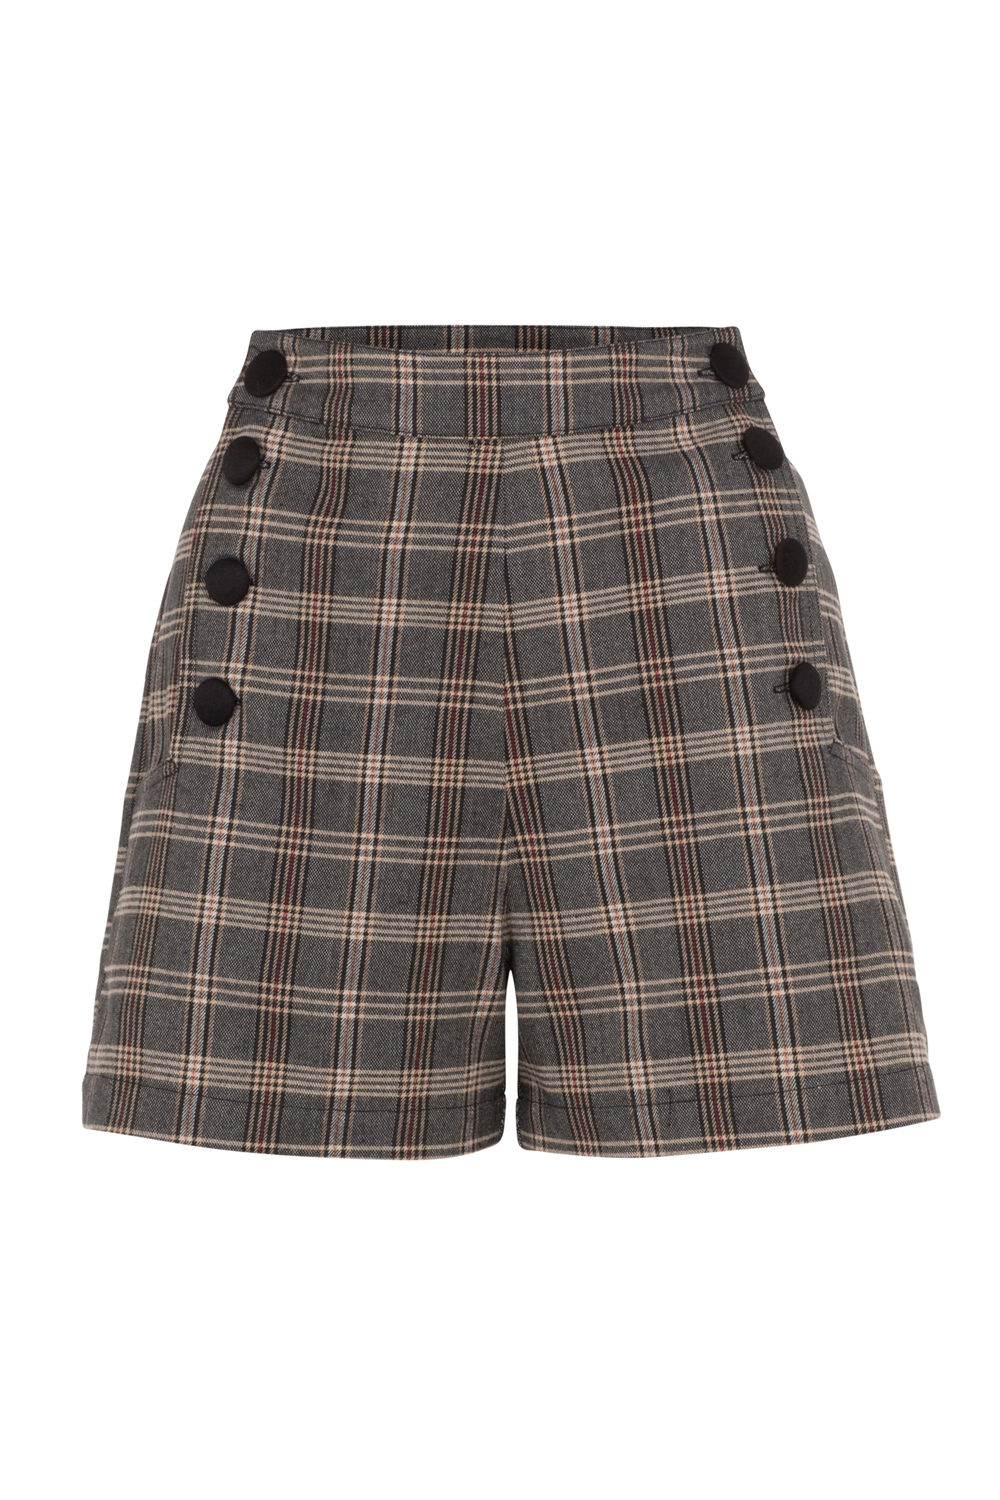 Whitney Brown High-Waist Shorts